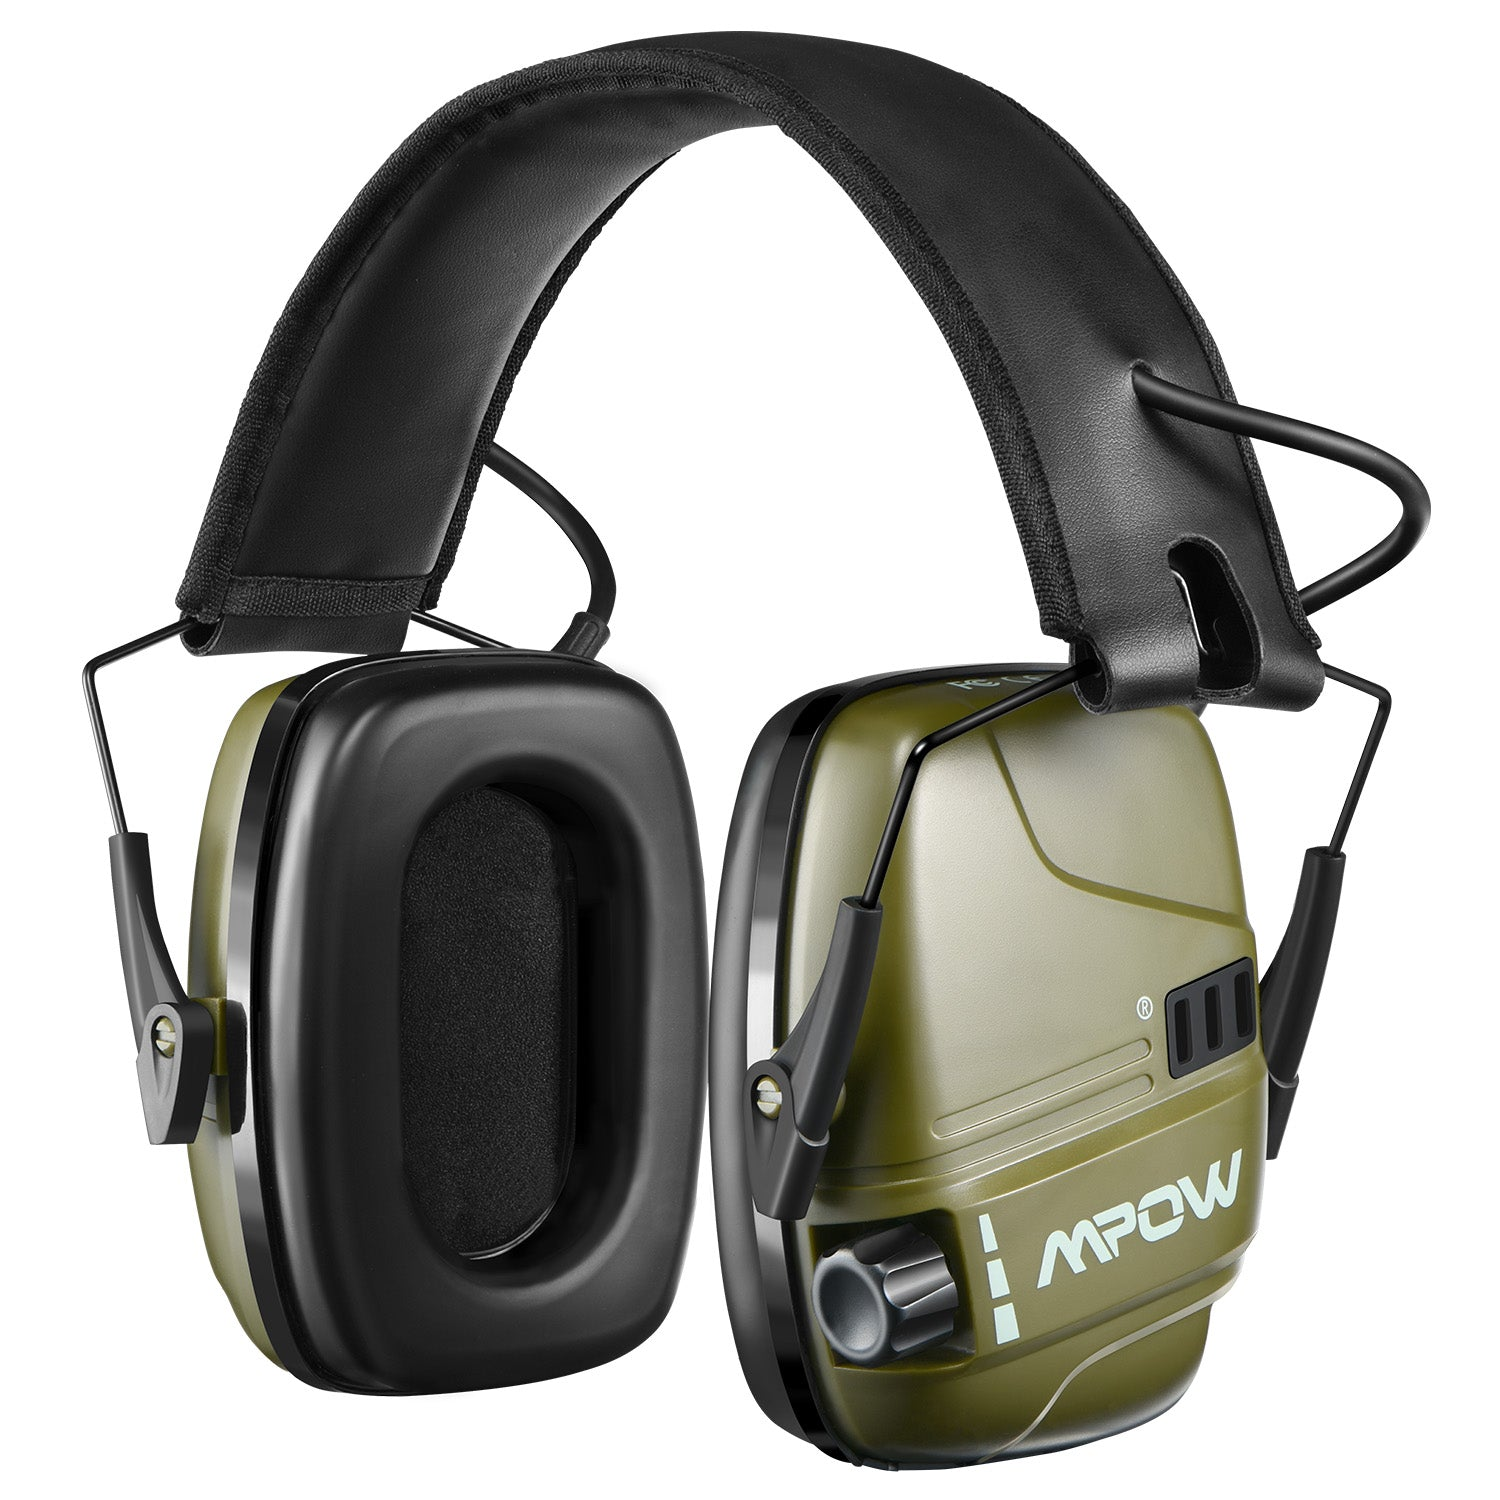 MPOW HP094B Electronic Shooting Earmuffs, Rechargeable, NRR 22dB